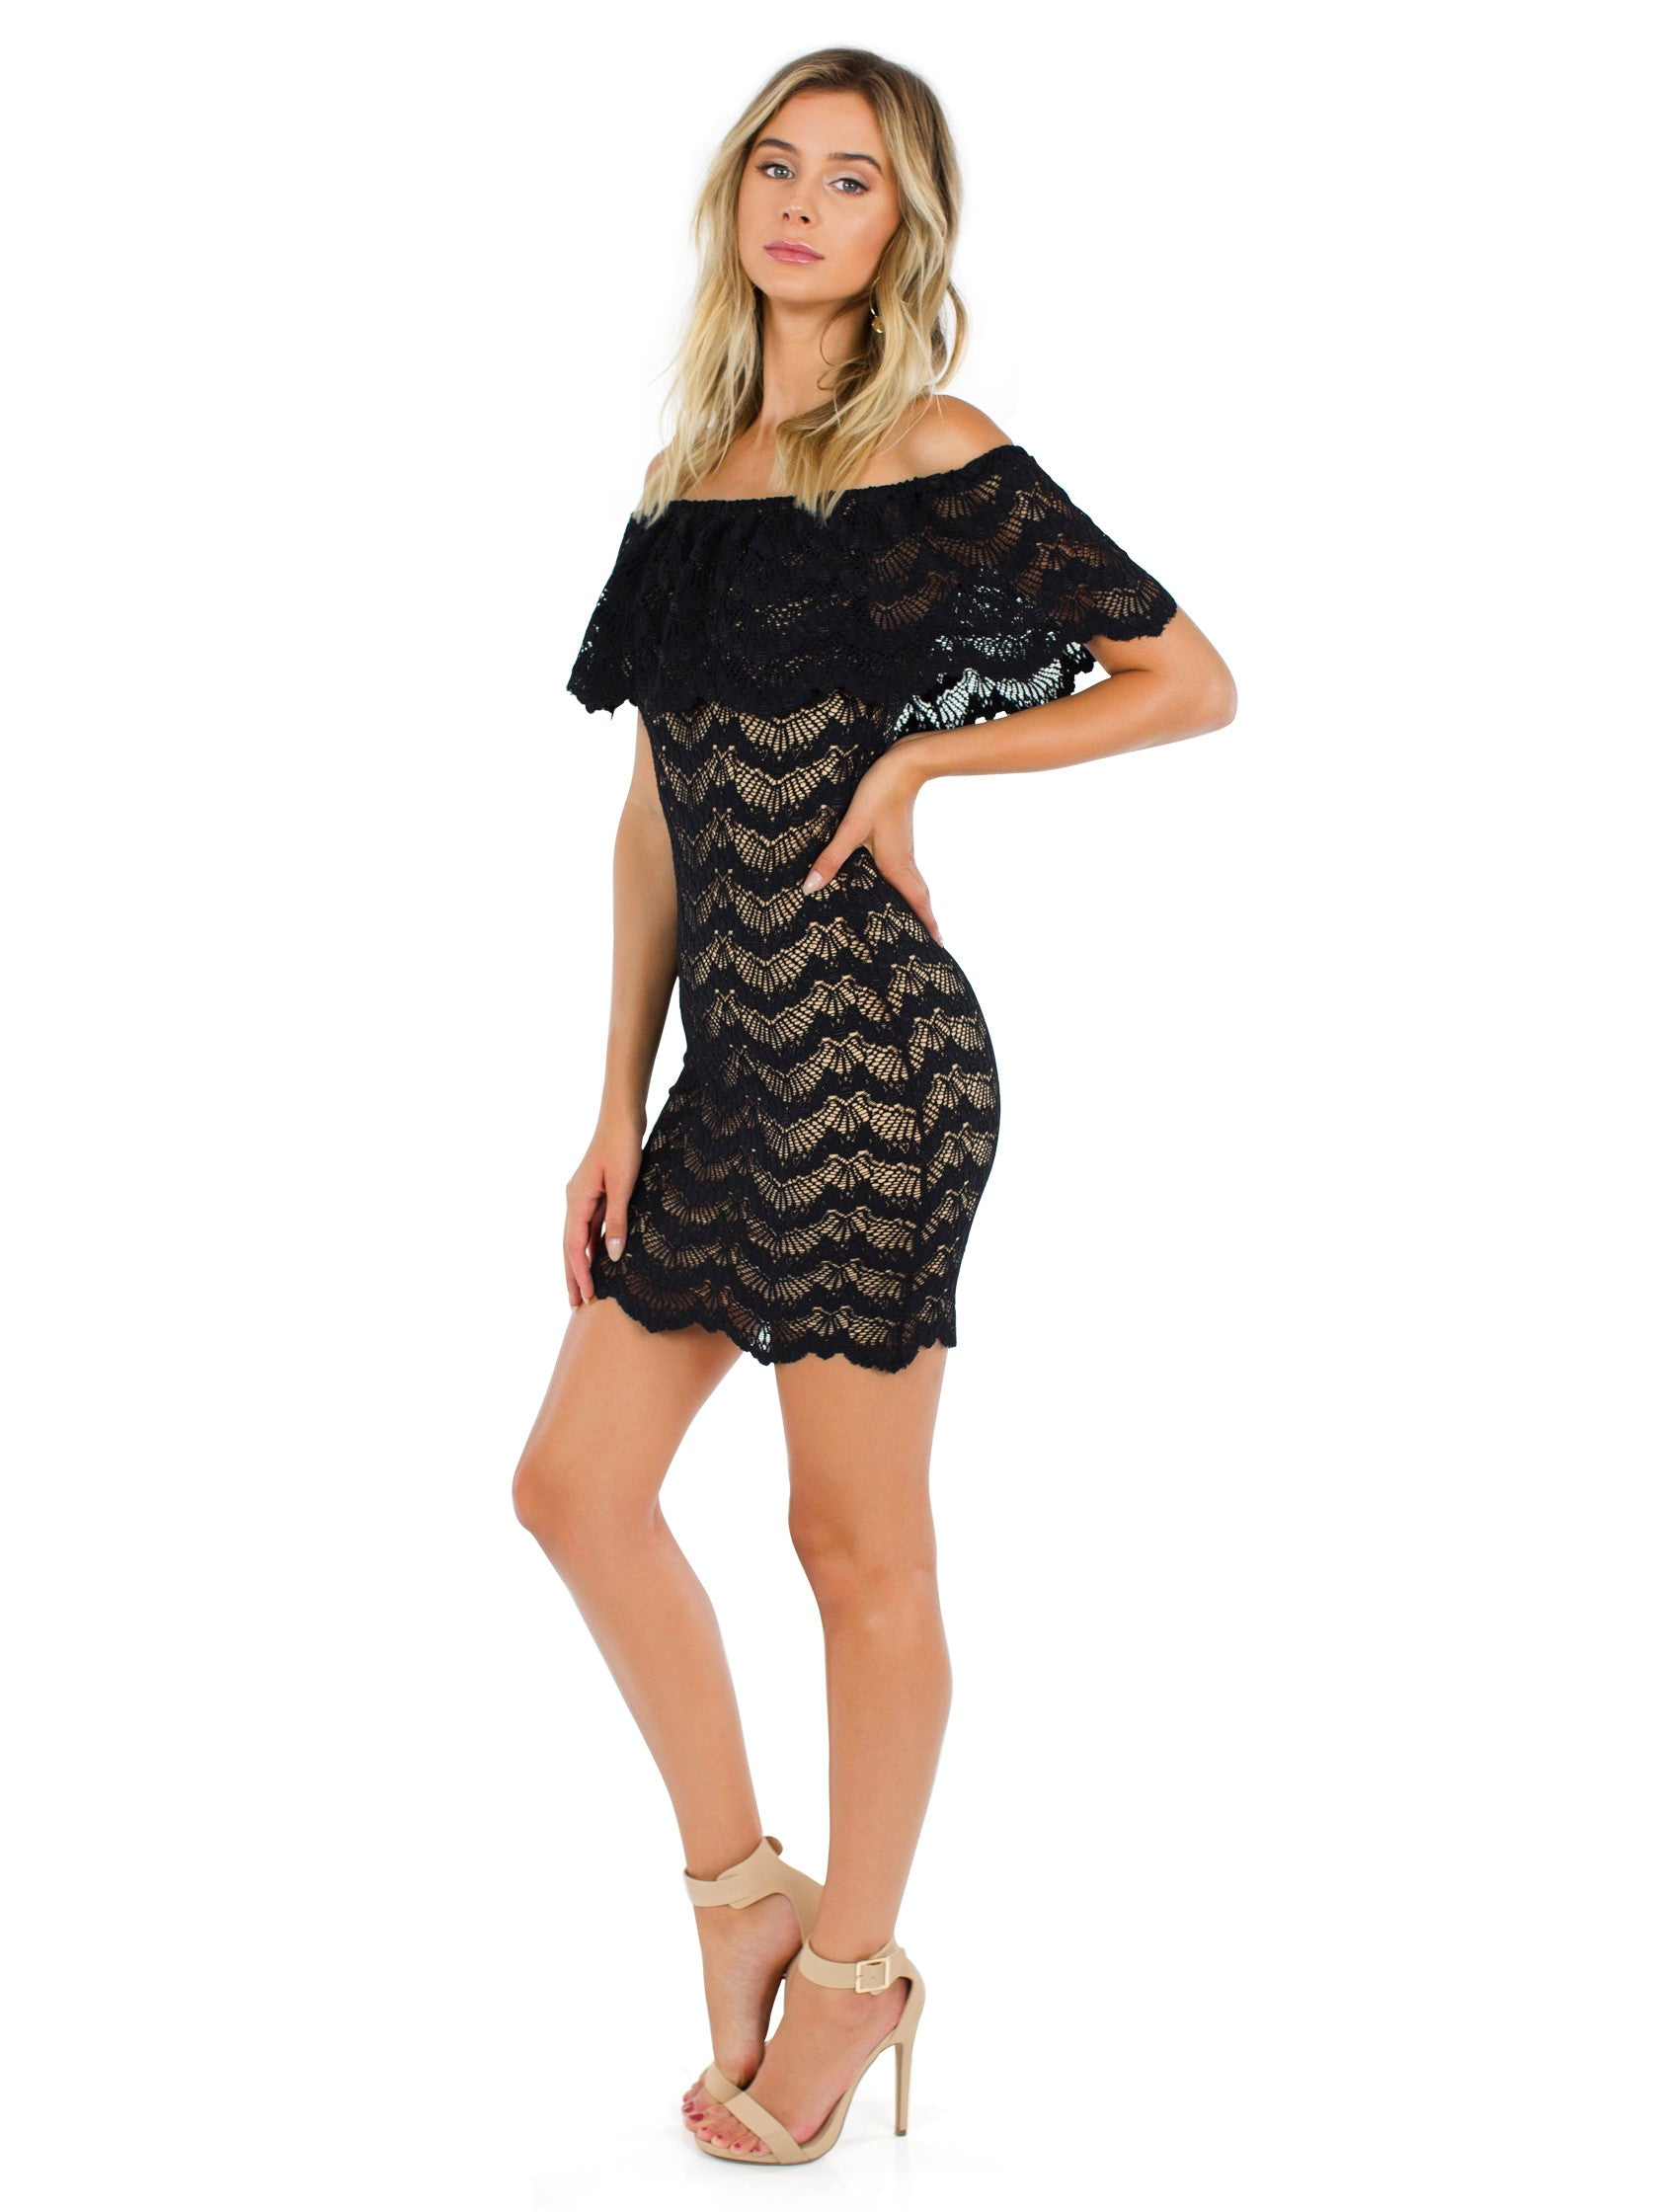 Woman wearing a dress rental from Nightcap Clothing called Bachelorette Mini Dress